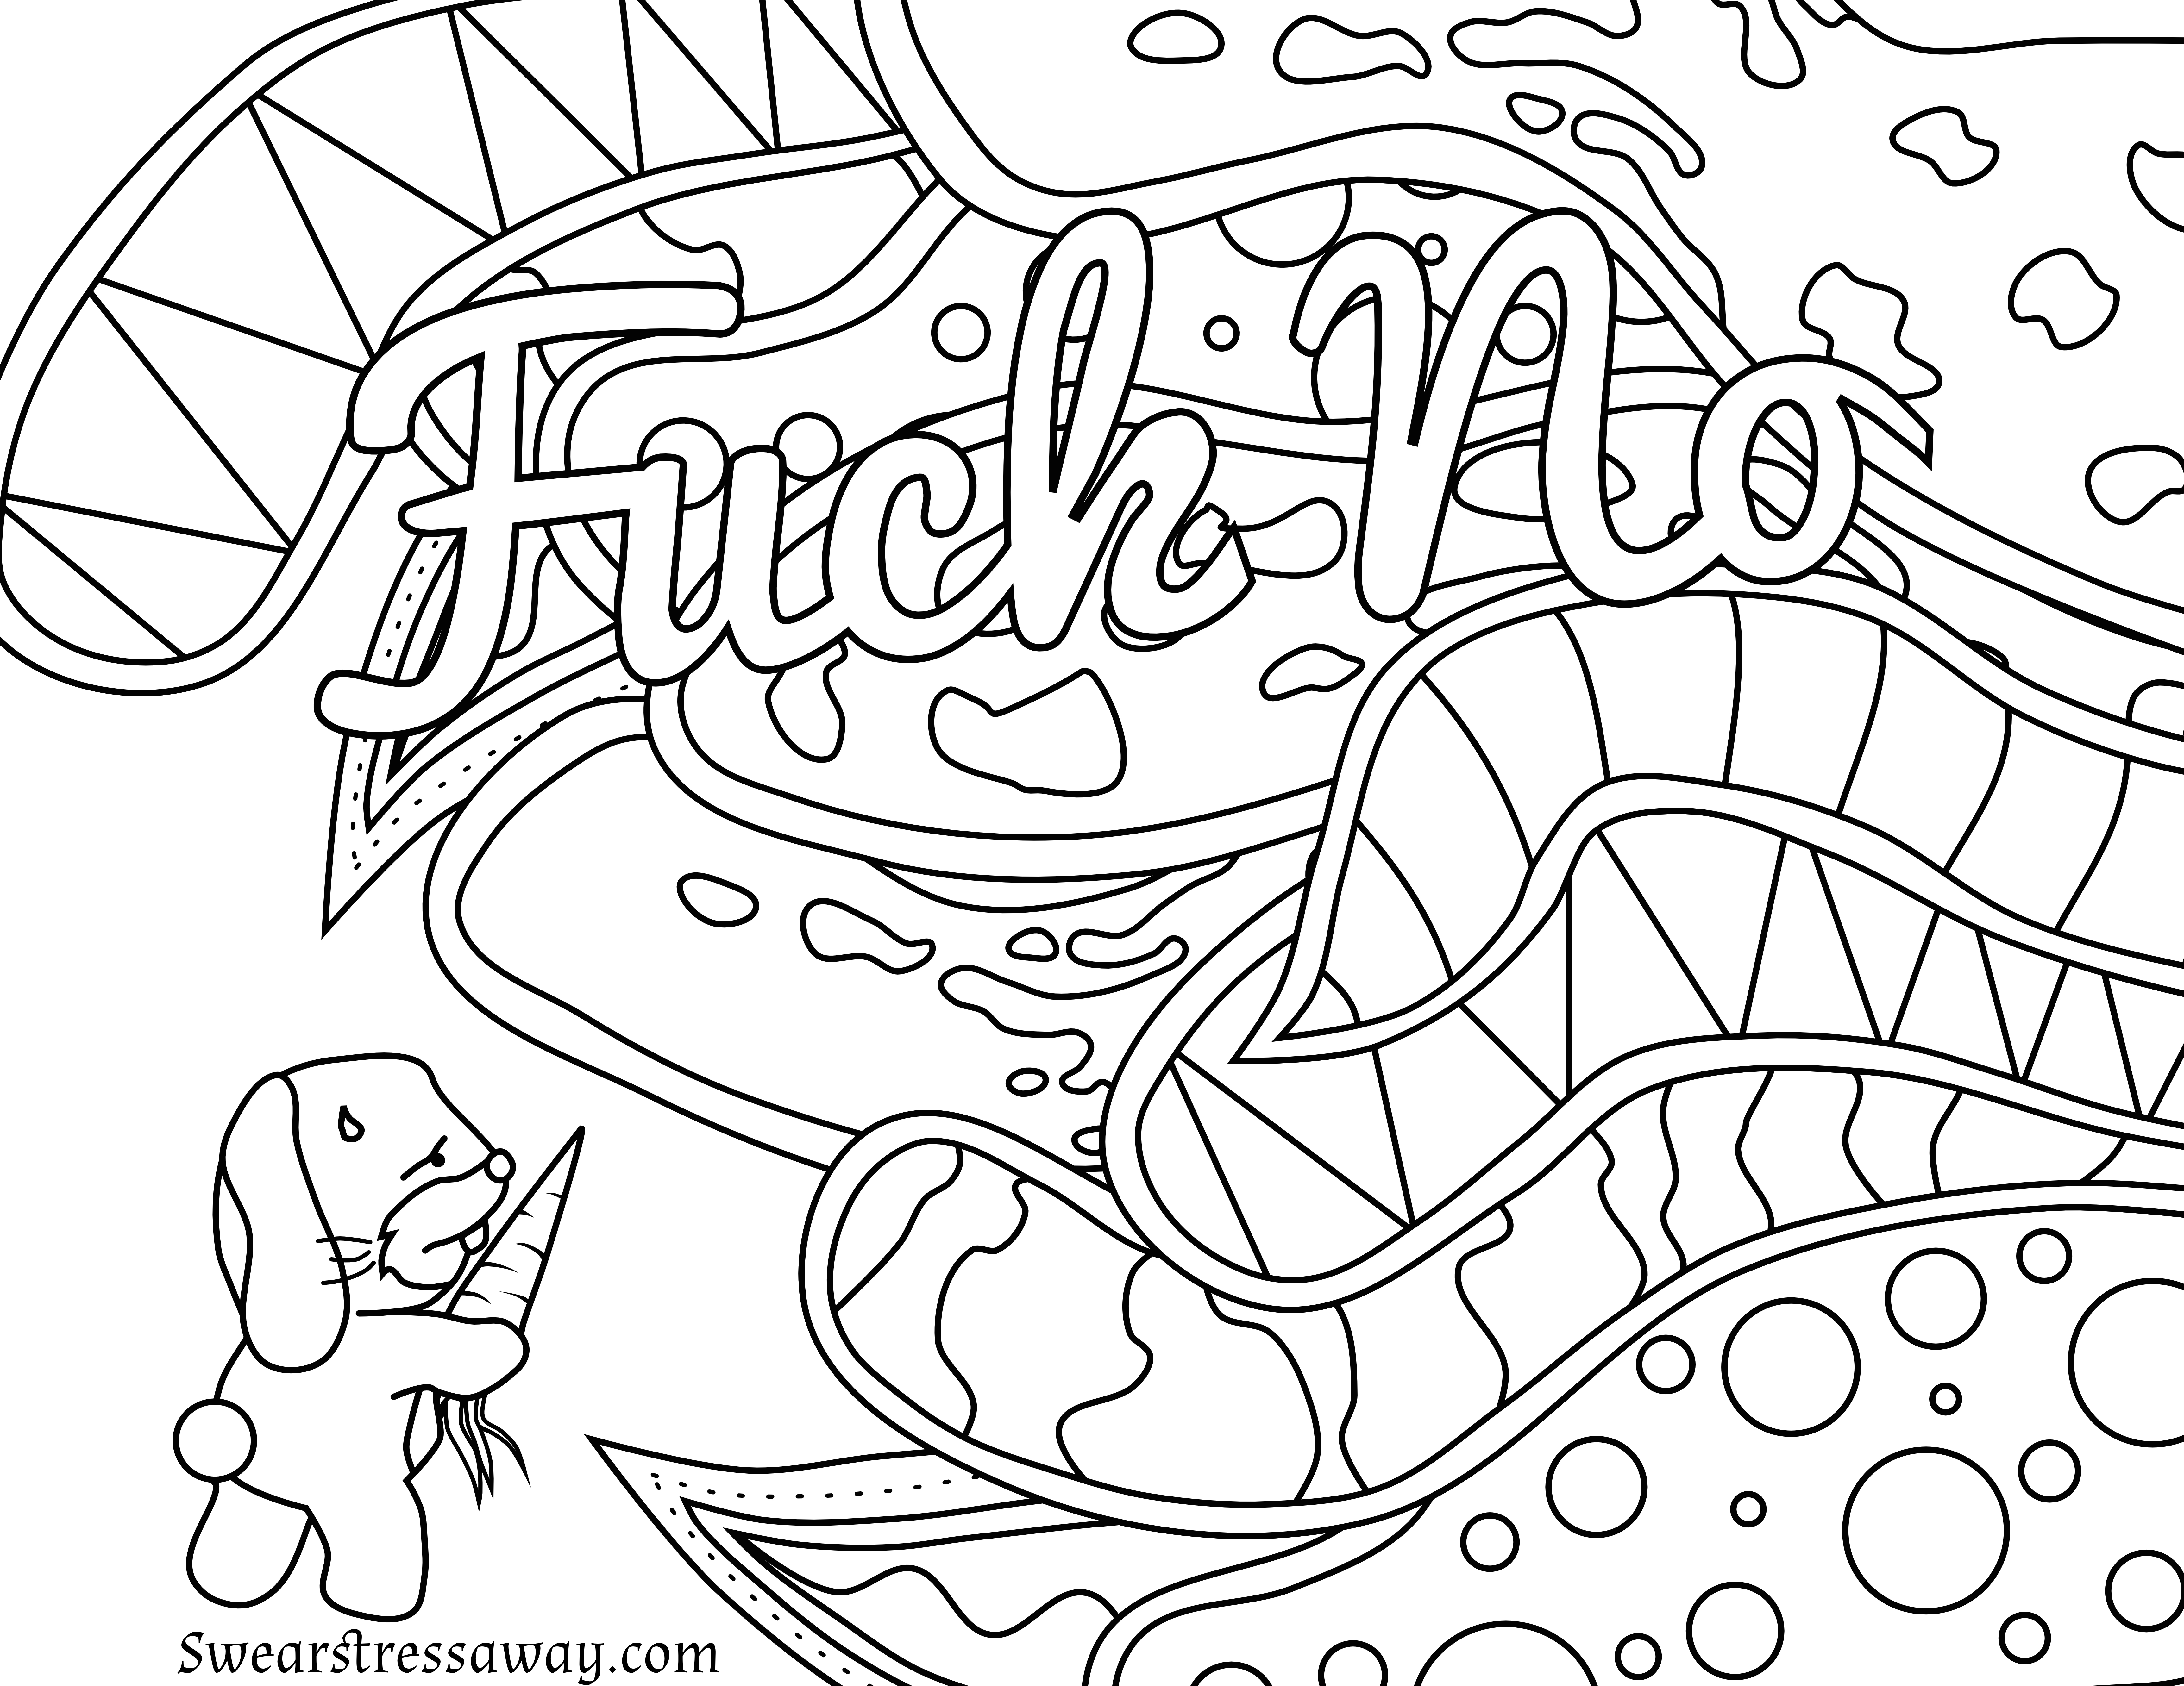 6900x5328 Image Result For Curse Words Coloring Pages Crafts New Coloring